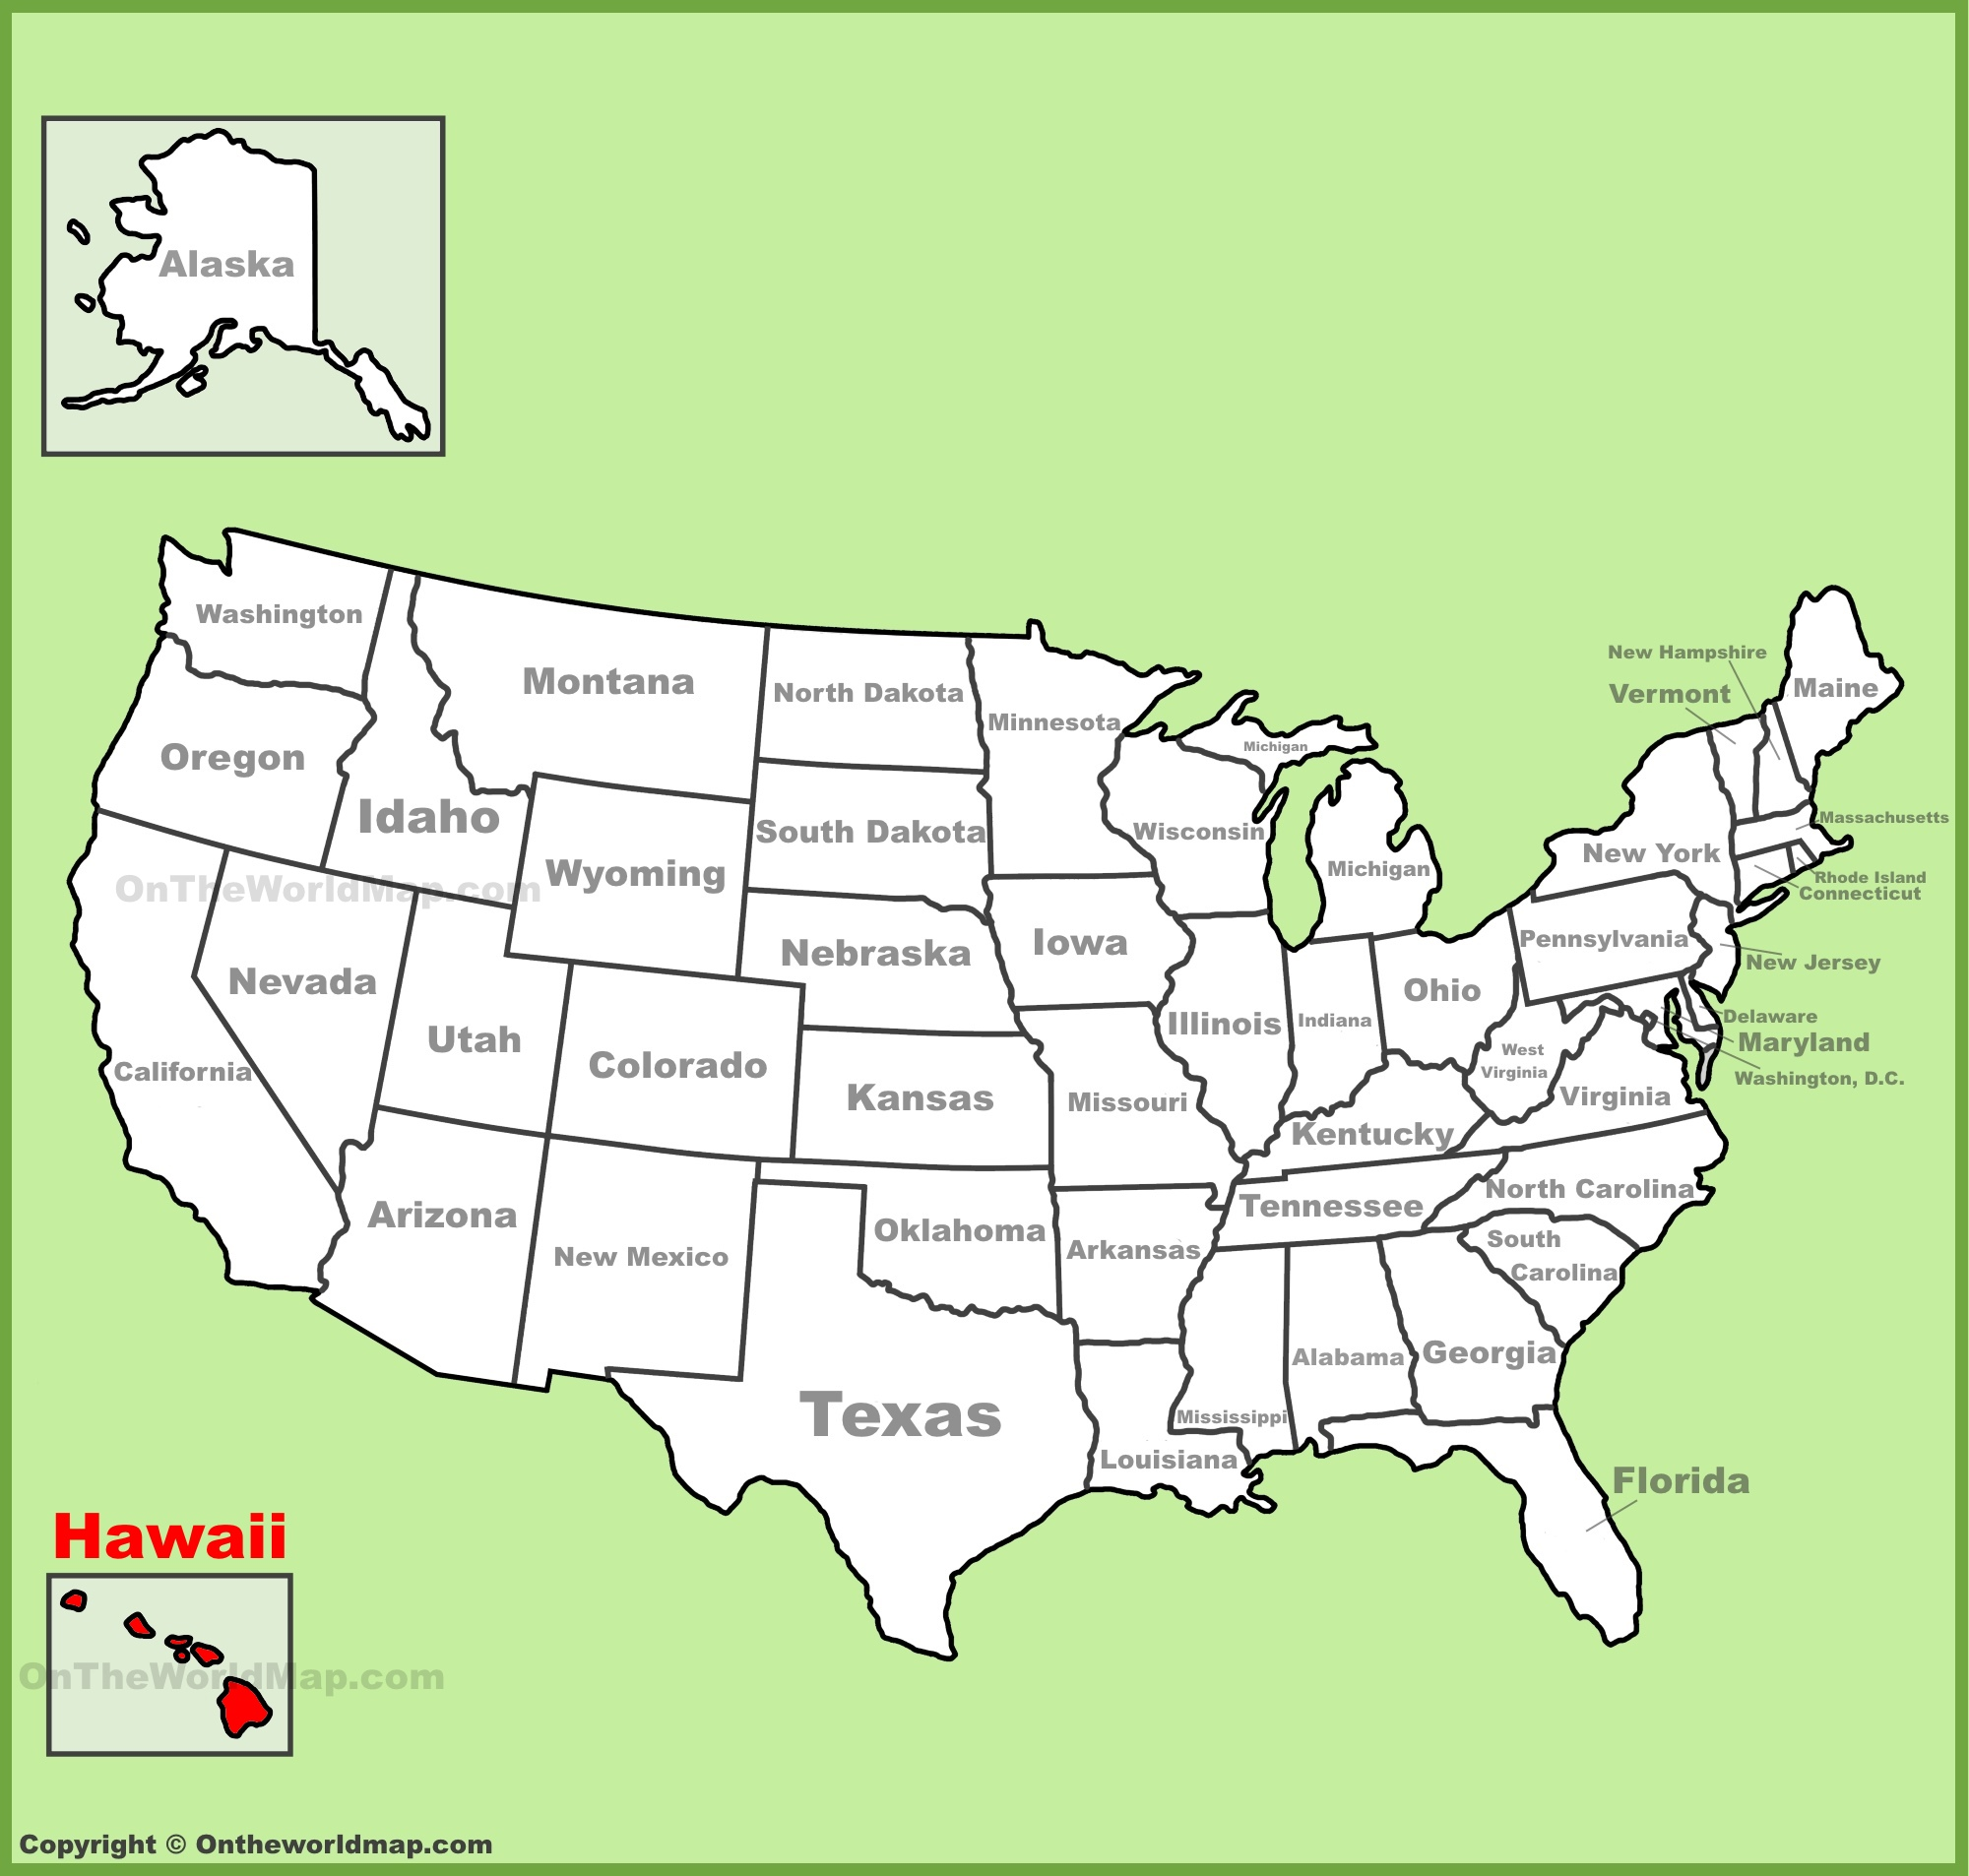 Hawaii State Maps USA Maps Of Hawaii Hawaiian Islands - Where is hawaii in the map us